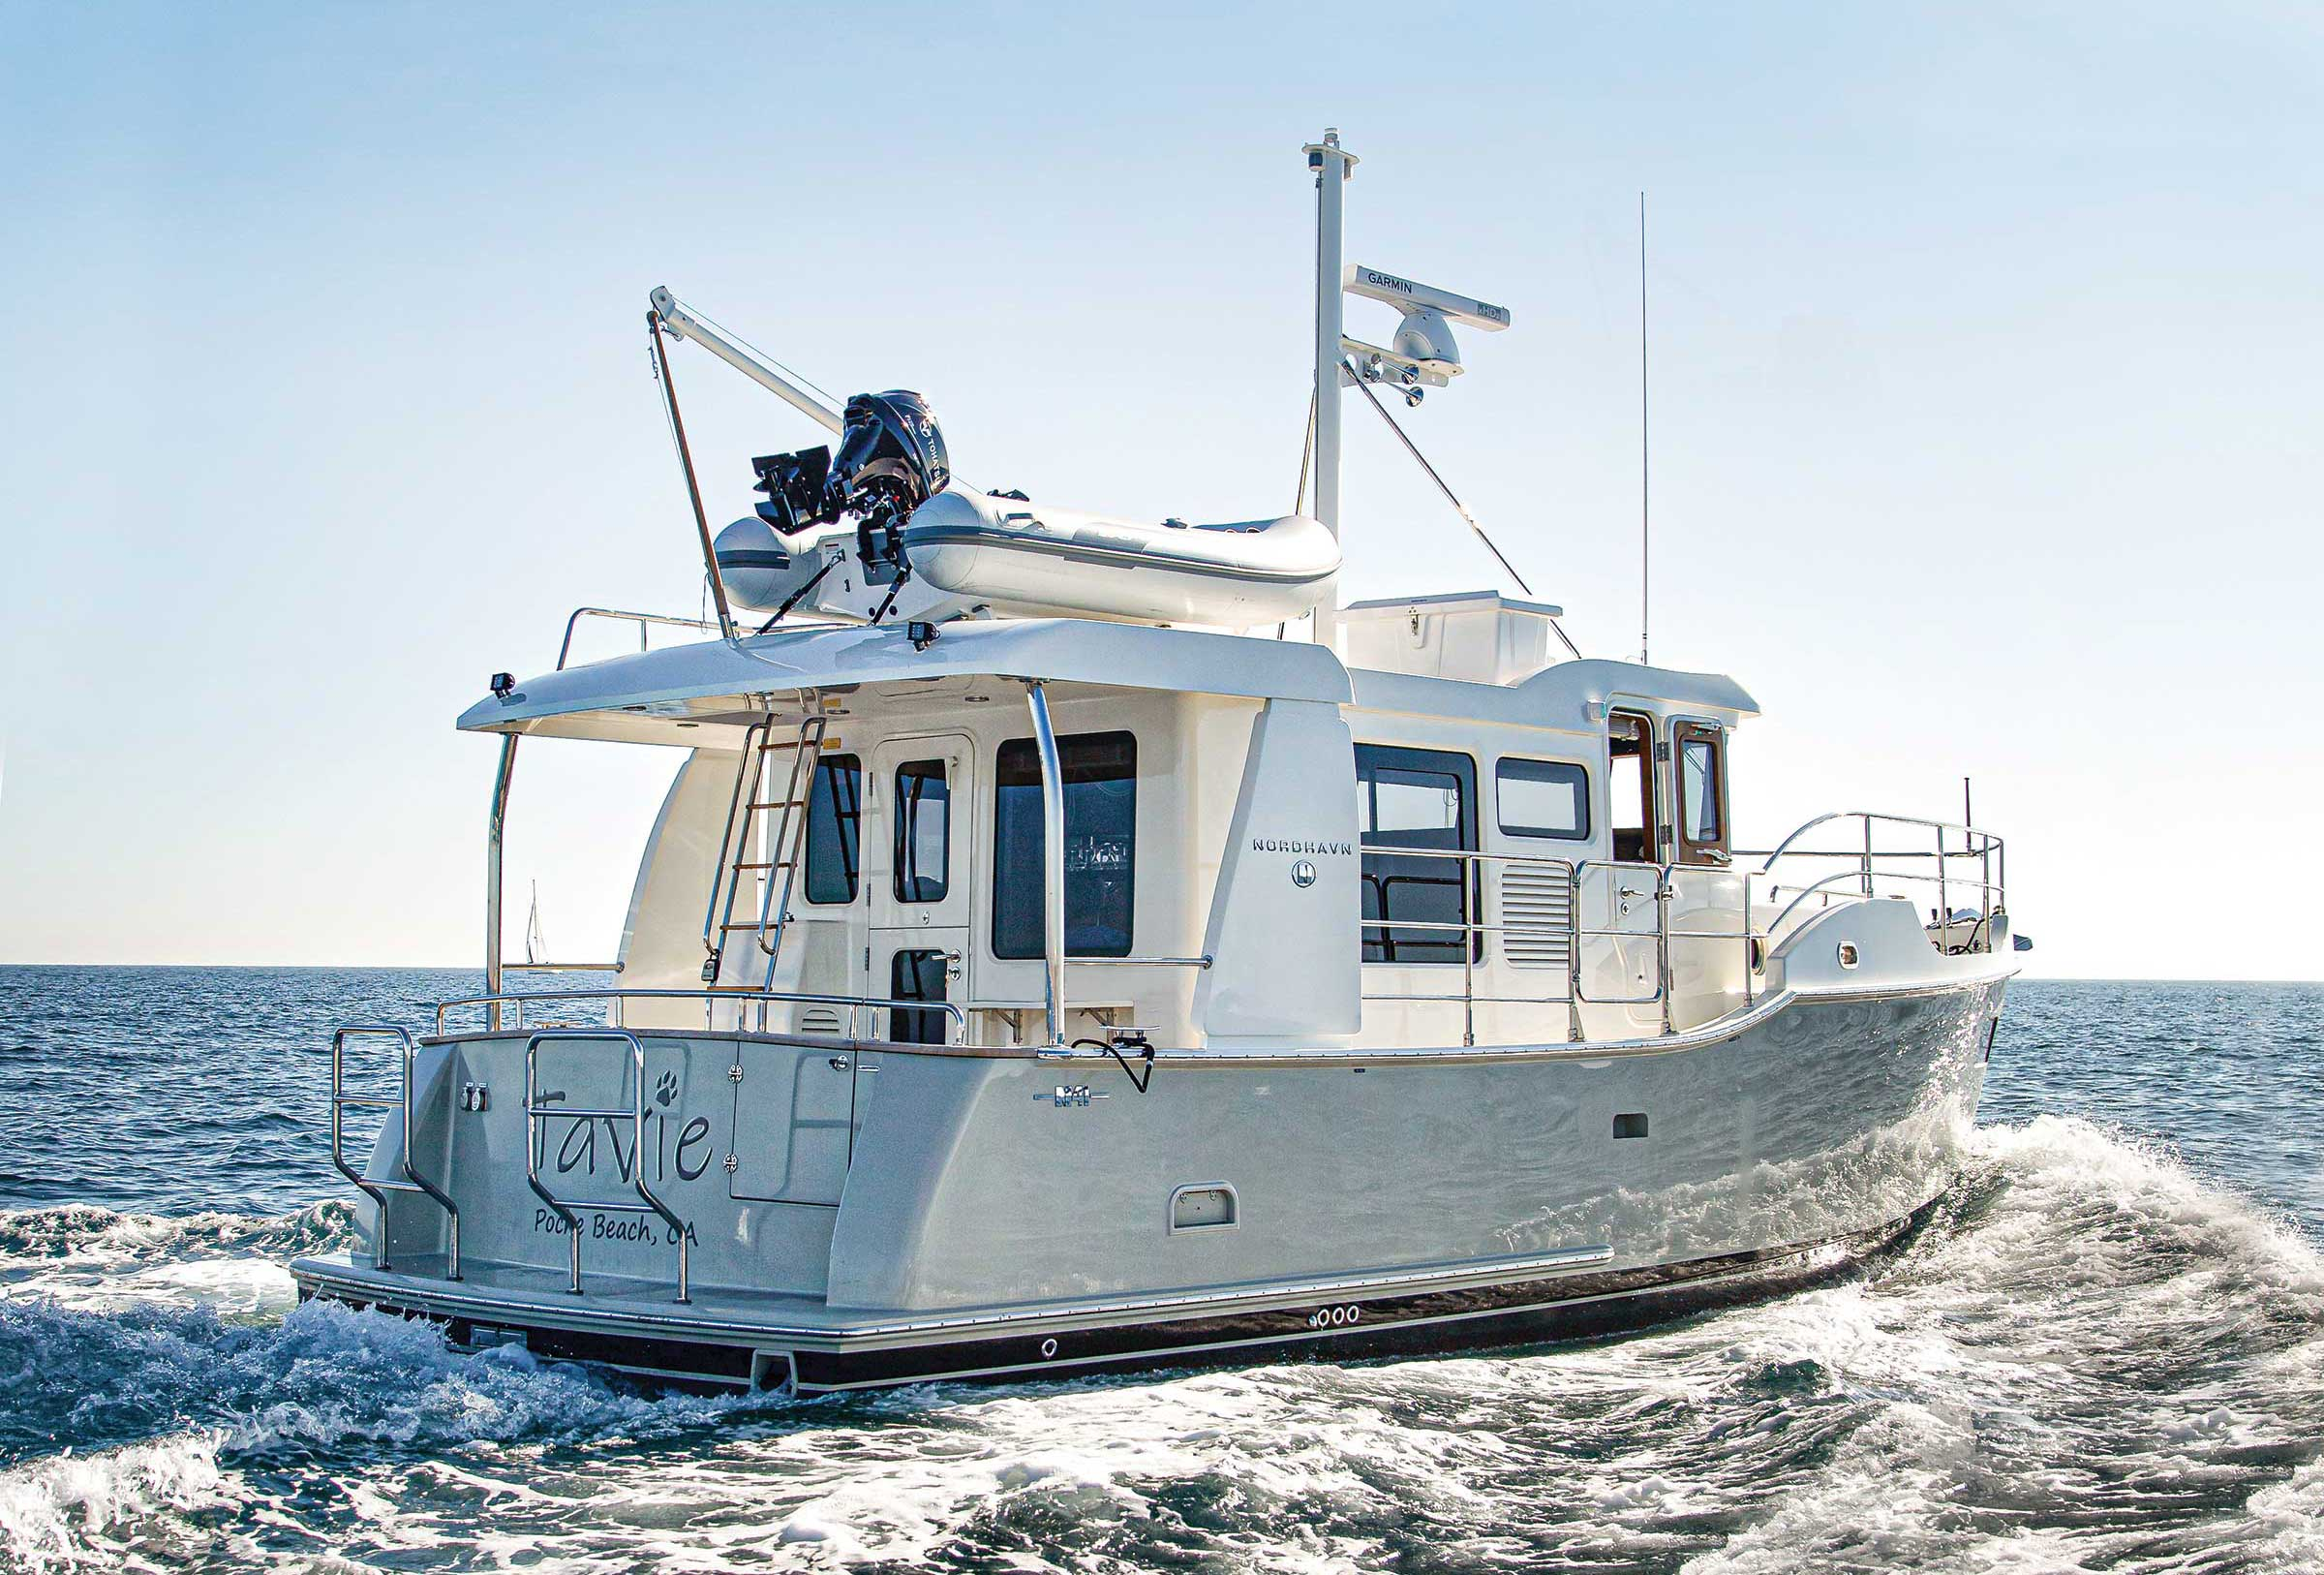 N41 will be on display at FLIBS